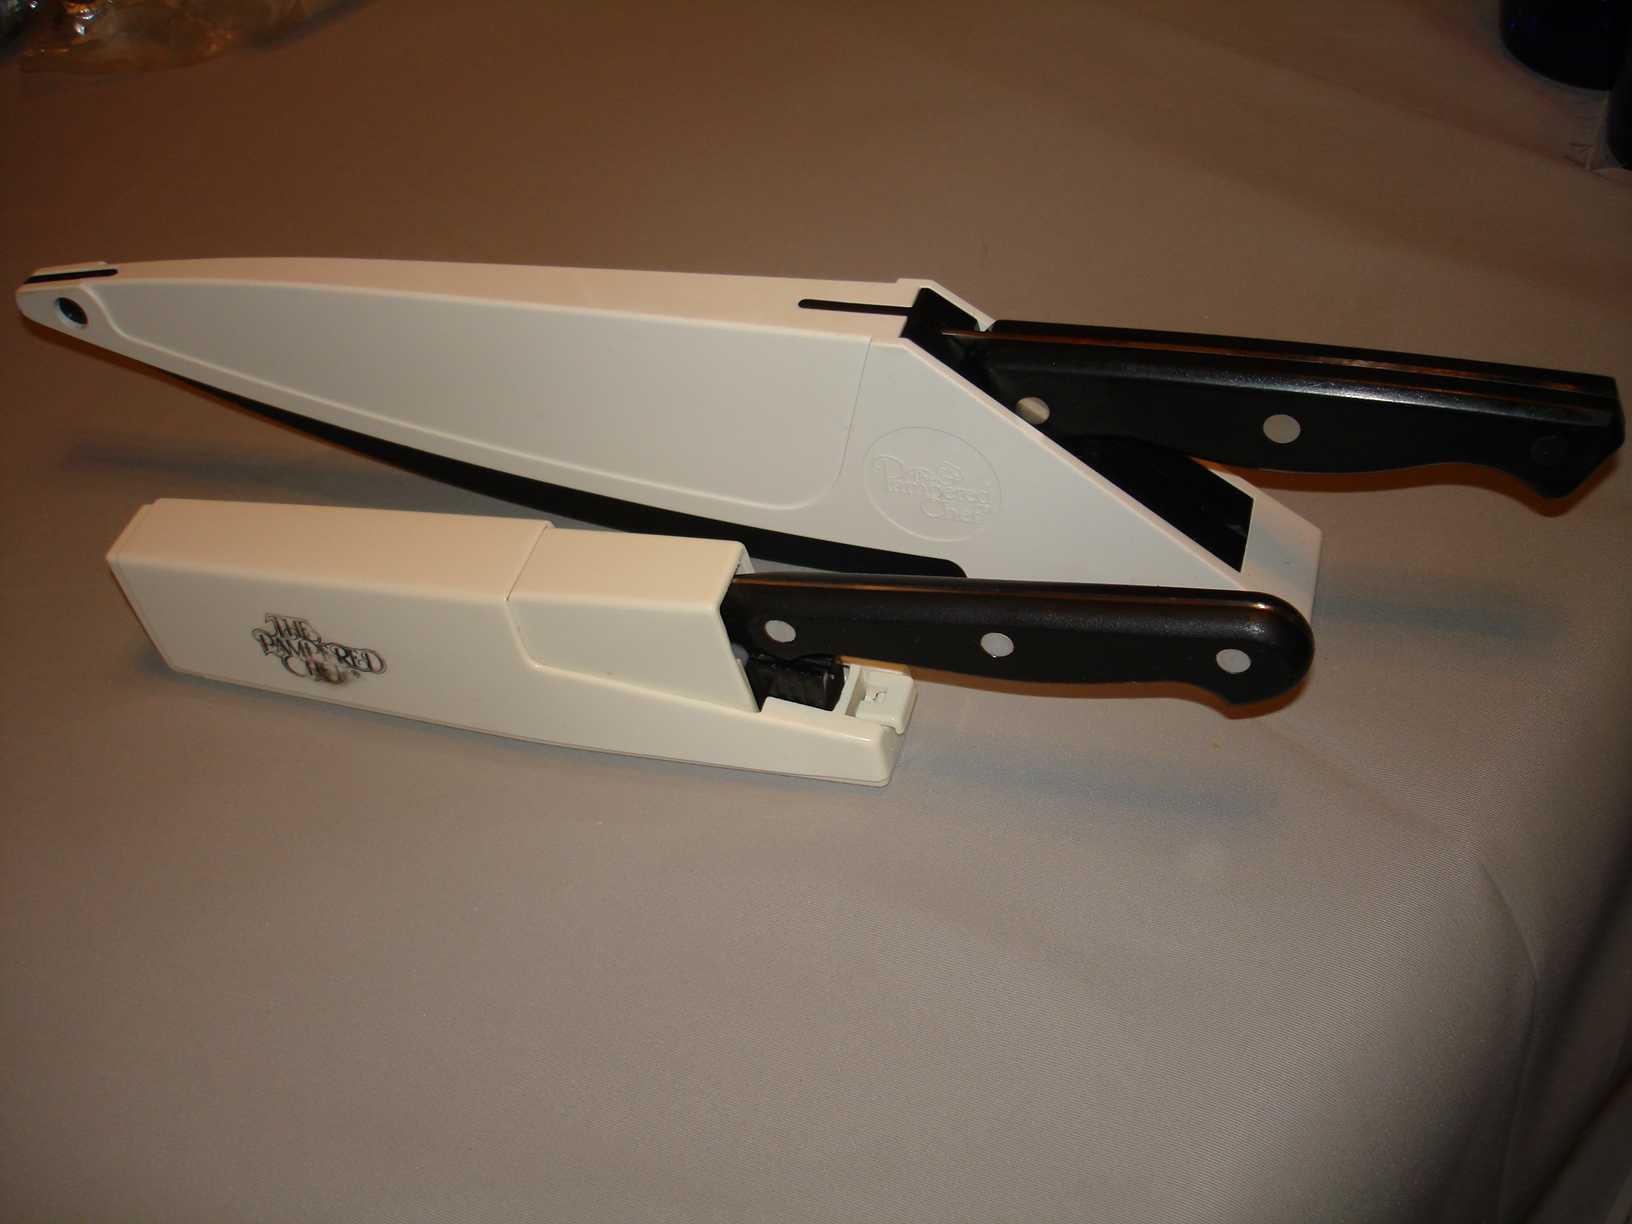 self sharpening kitchen knife good set pampered chef 8 quot and 5 utility knives w